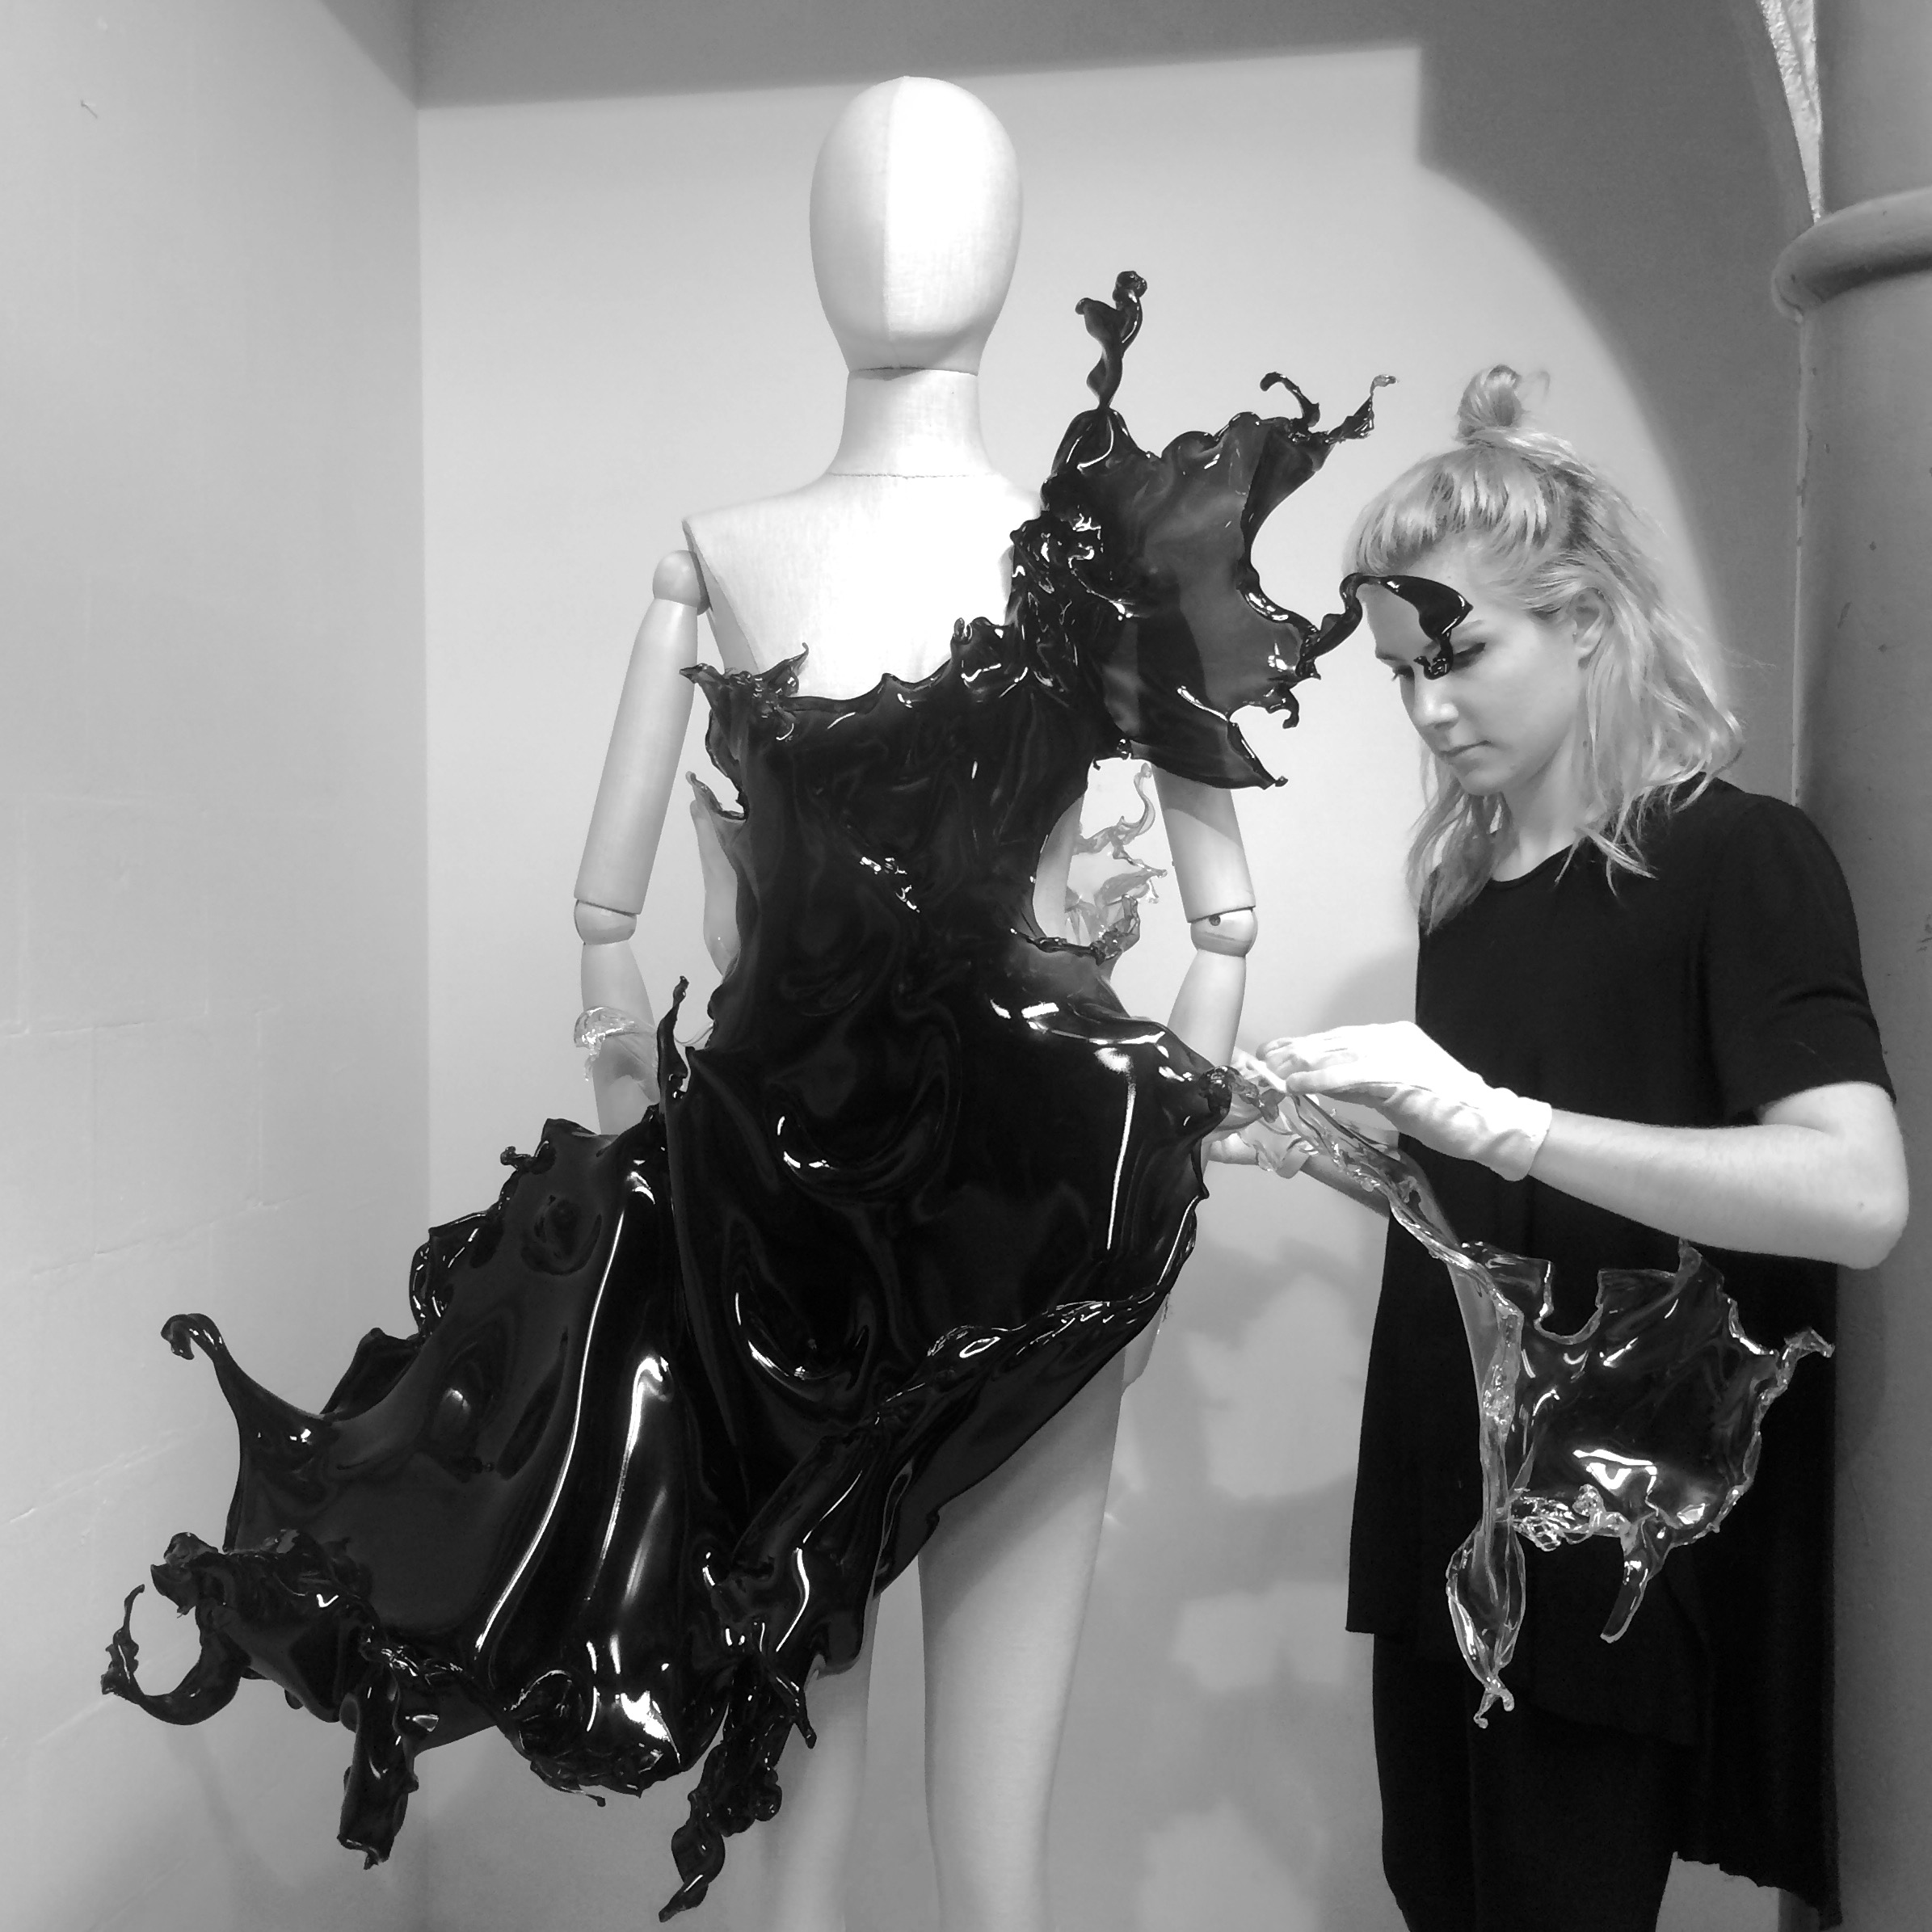 The atelier working on the 'Splash' dress in 2013. The project is a collaboration with Nick Knight and Daphne Guinness.